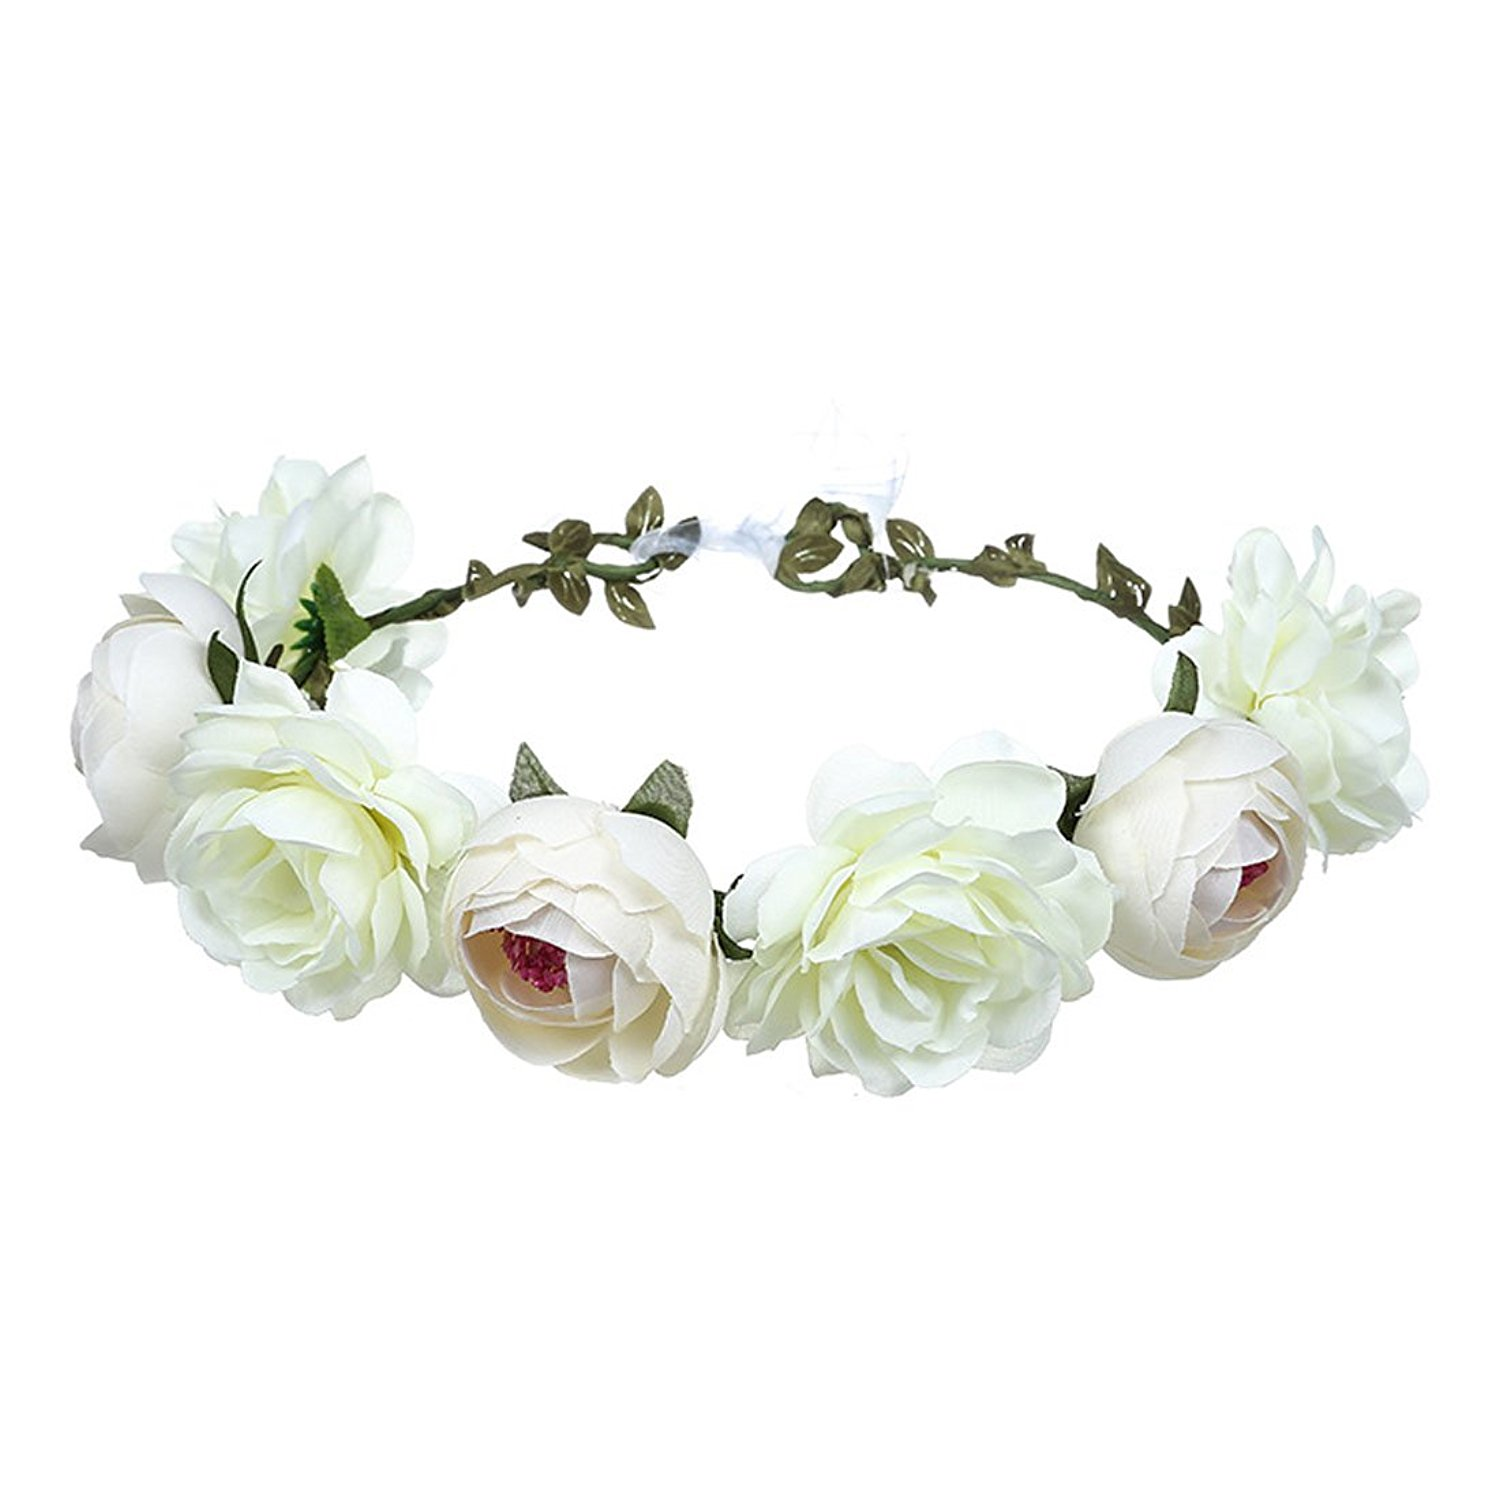 Cheap Rose Crown Headband Find Rose Crown Headband Deals On Line At